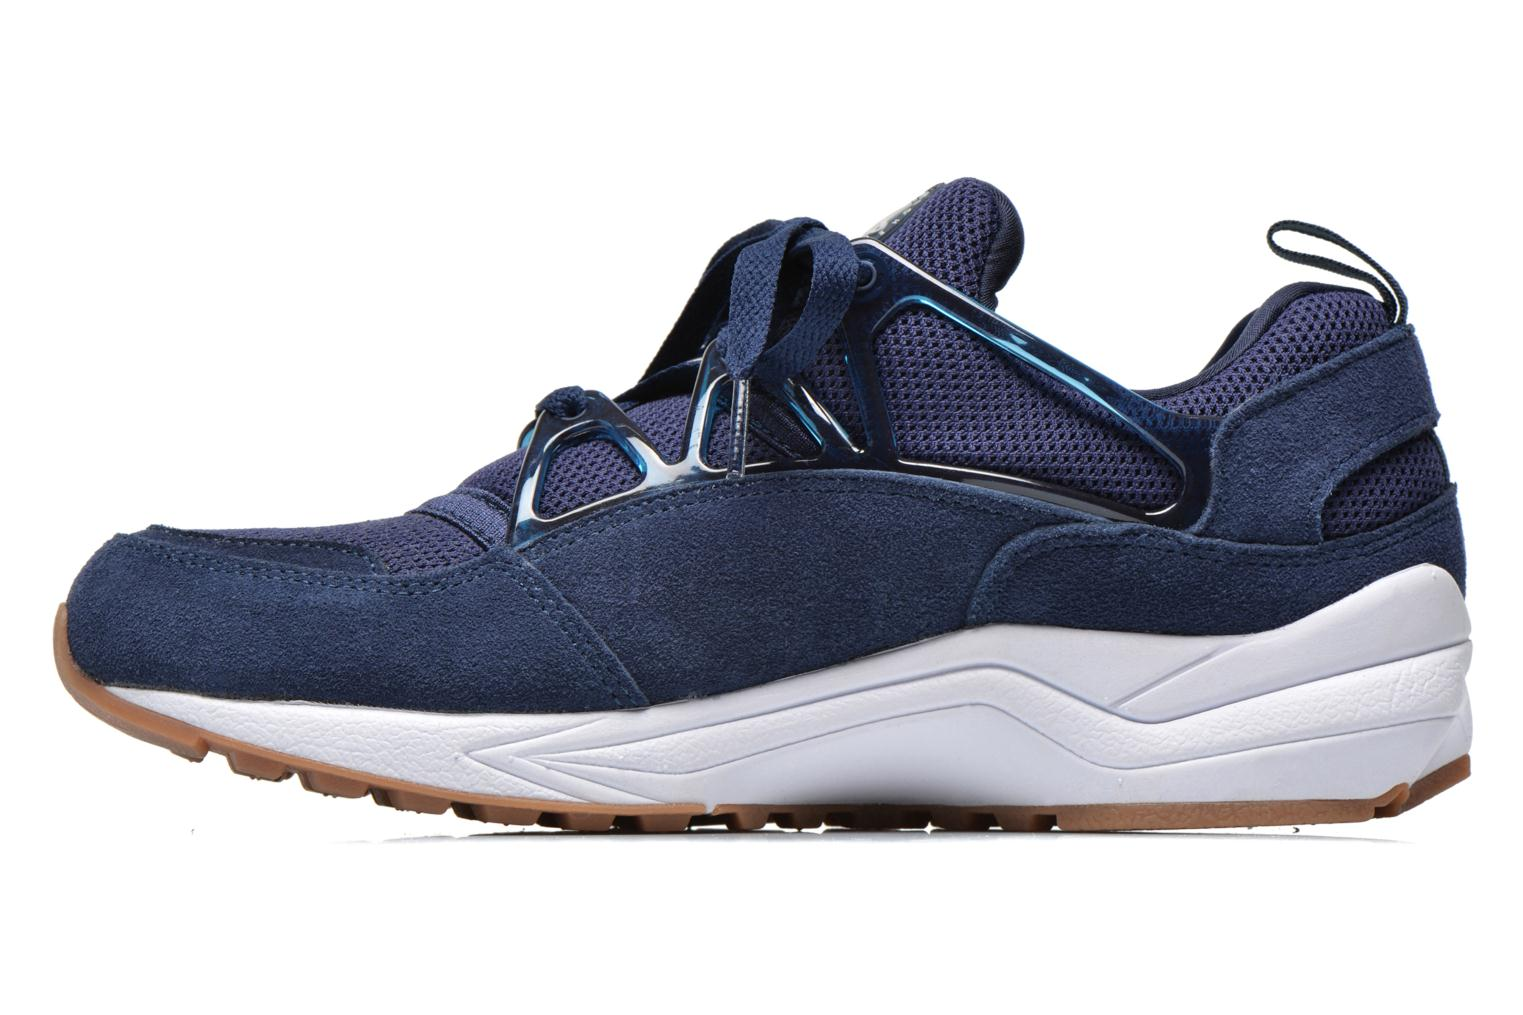 Air Huarache Light Mid Nvy/Wlf Gry-Drk Obsdn-Whit